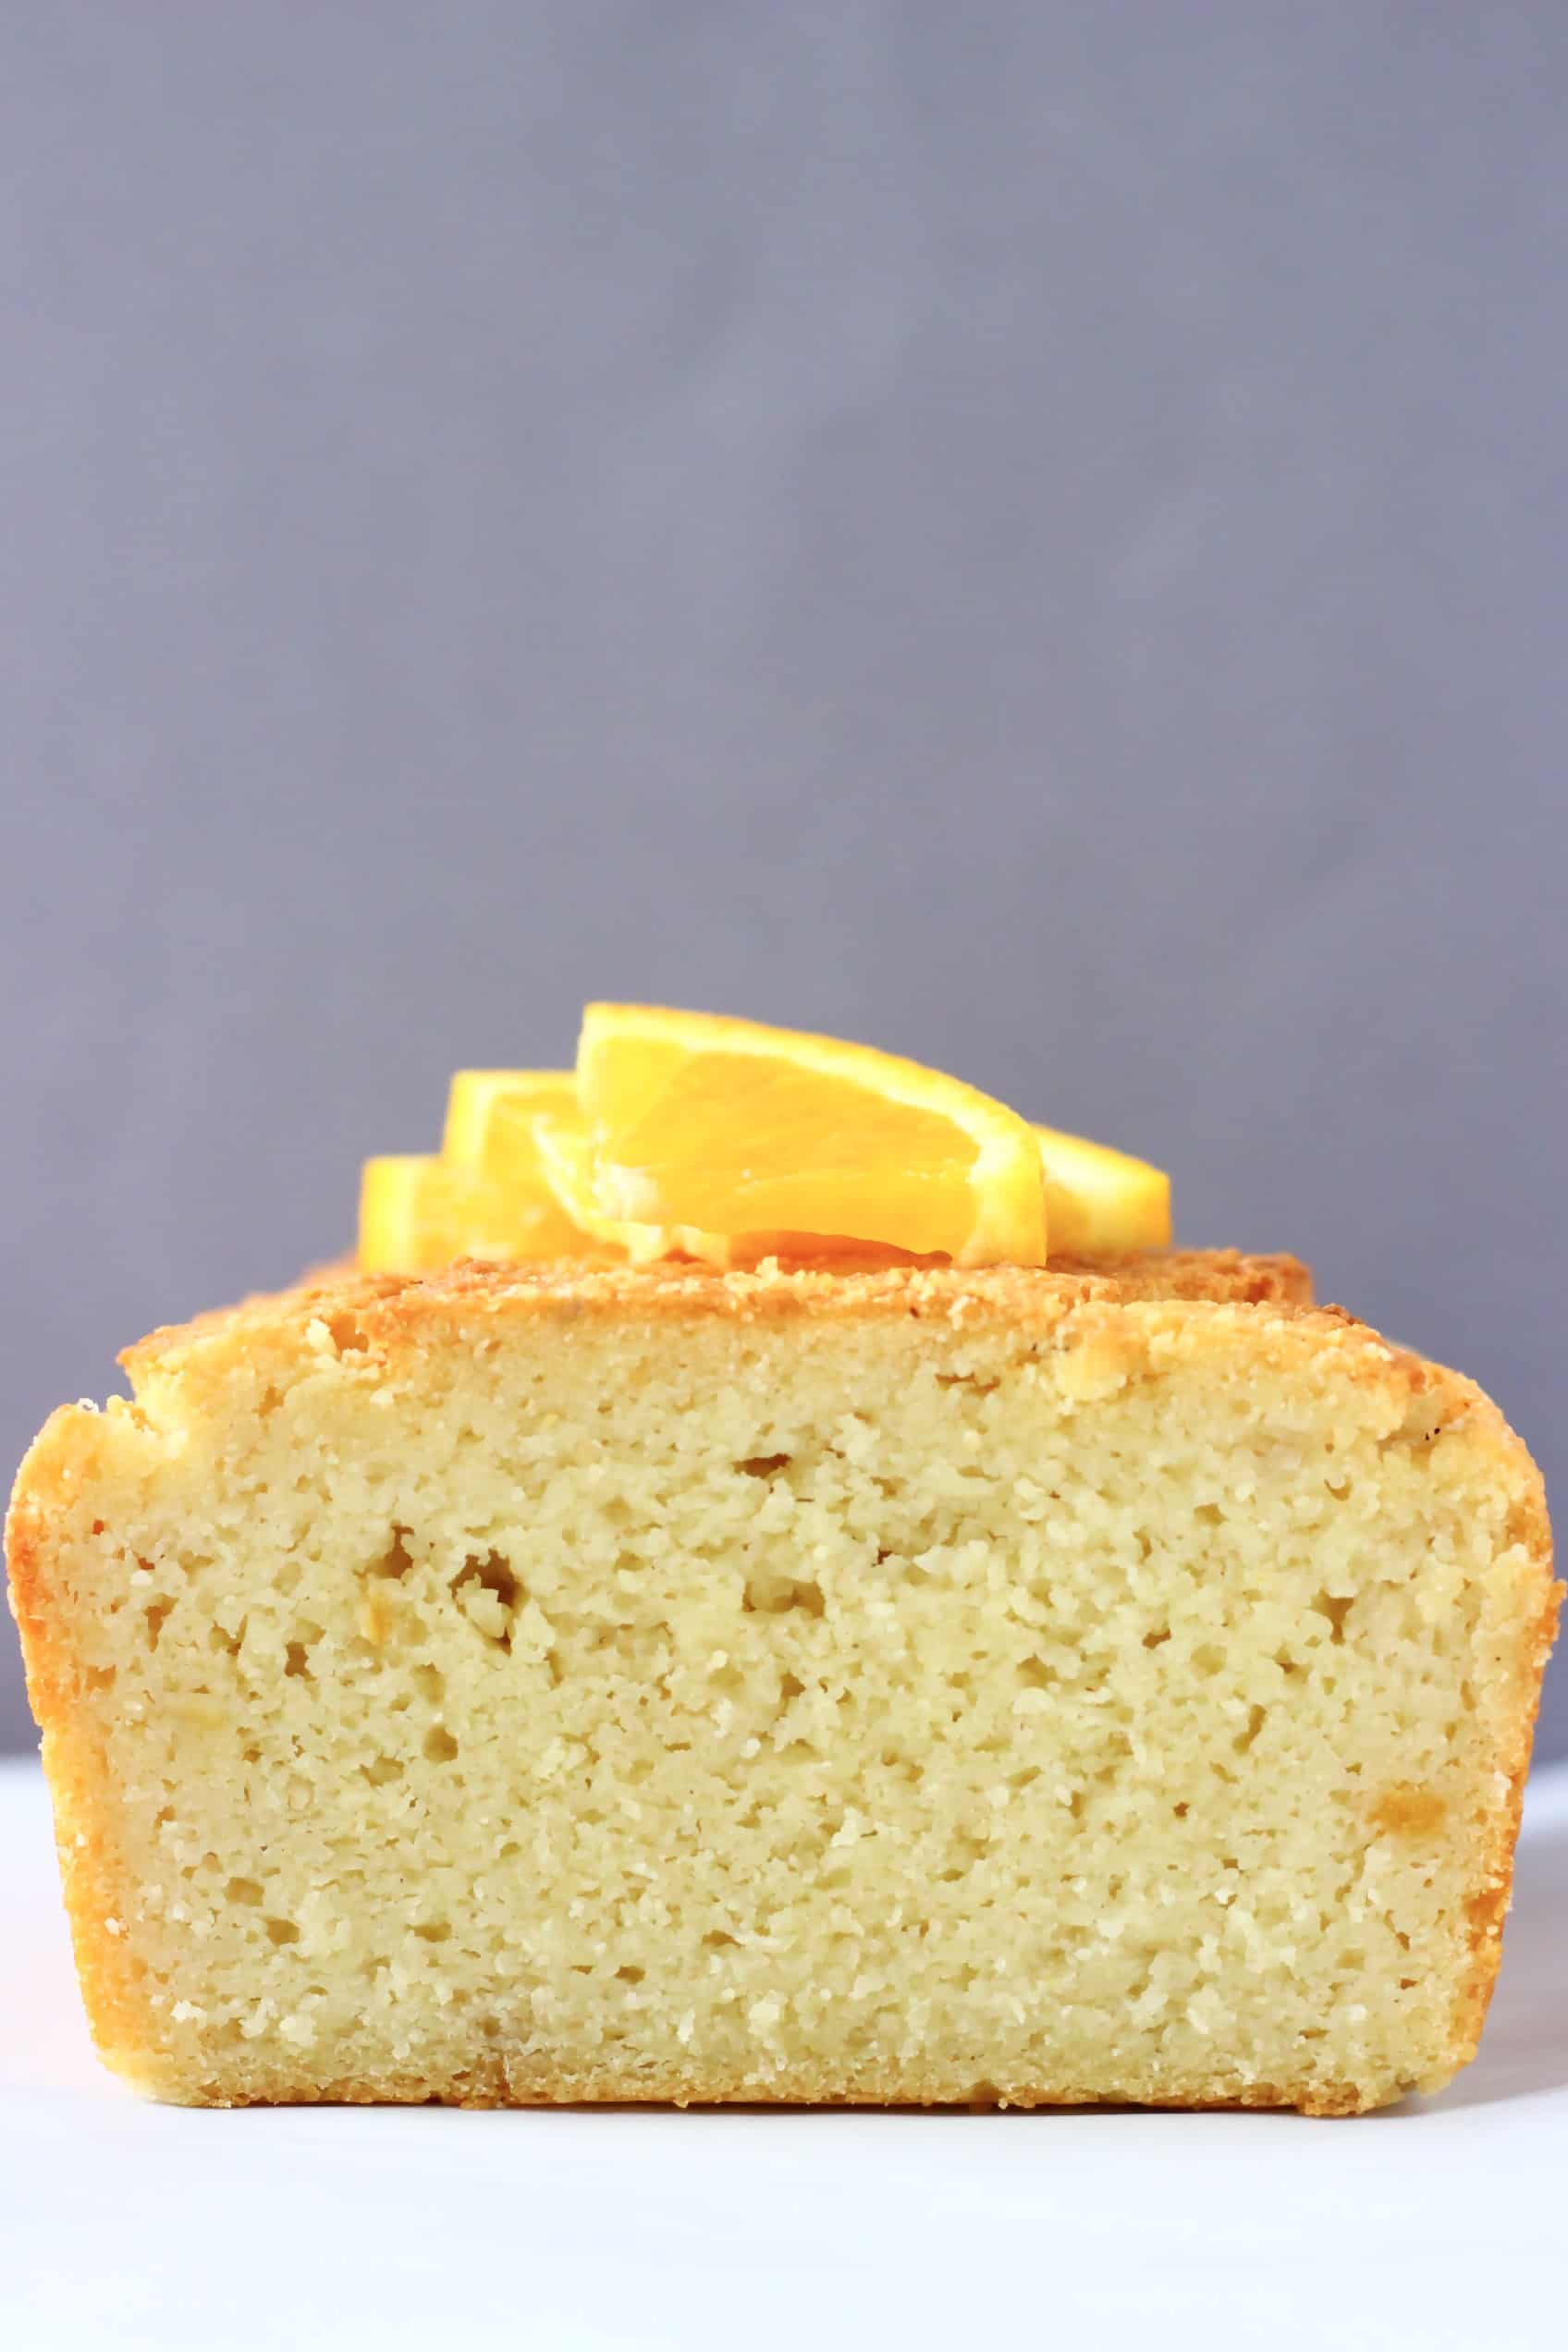 A sliced gluten-free vegan orange pound cake topped with orange wedges